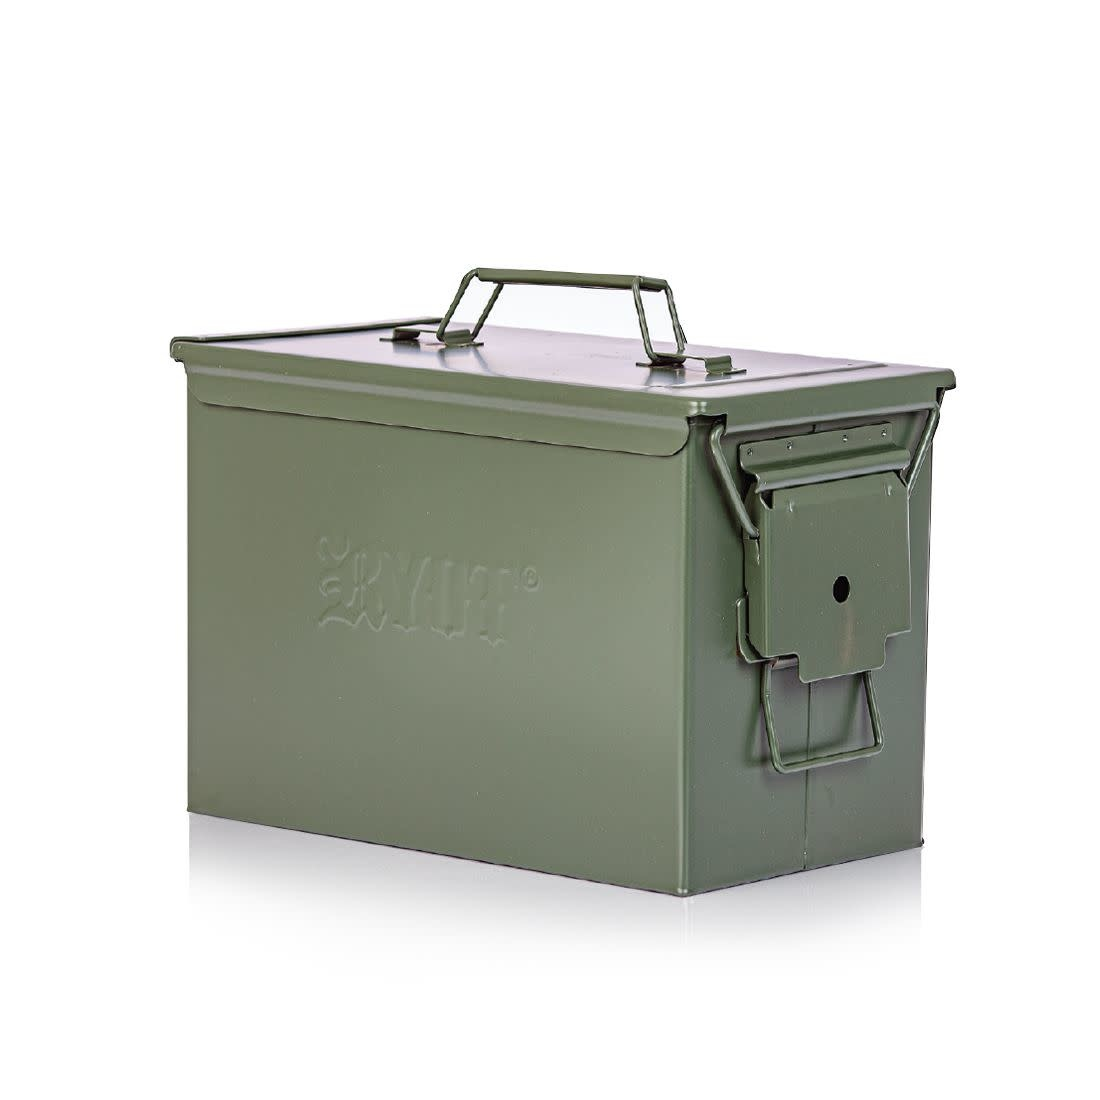 Ryot Metal Ammo Box - The Destroyer